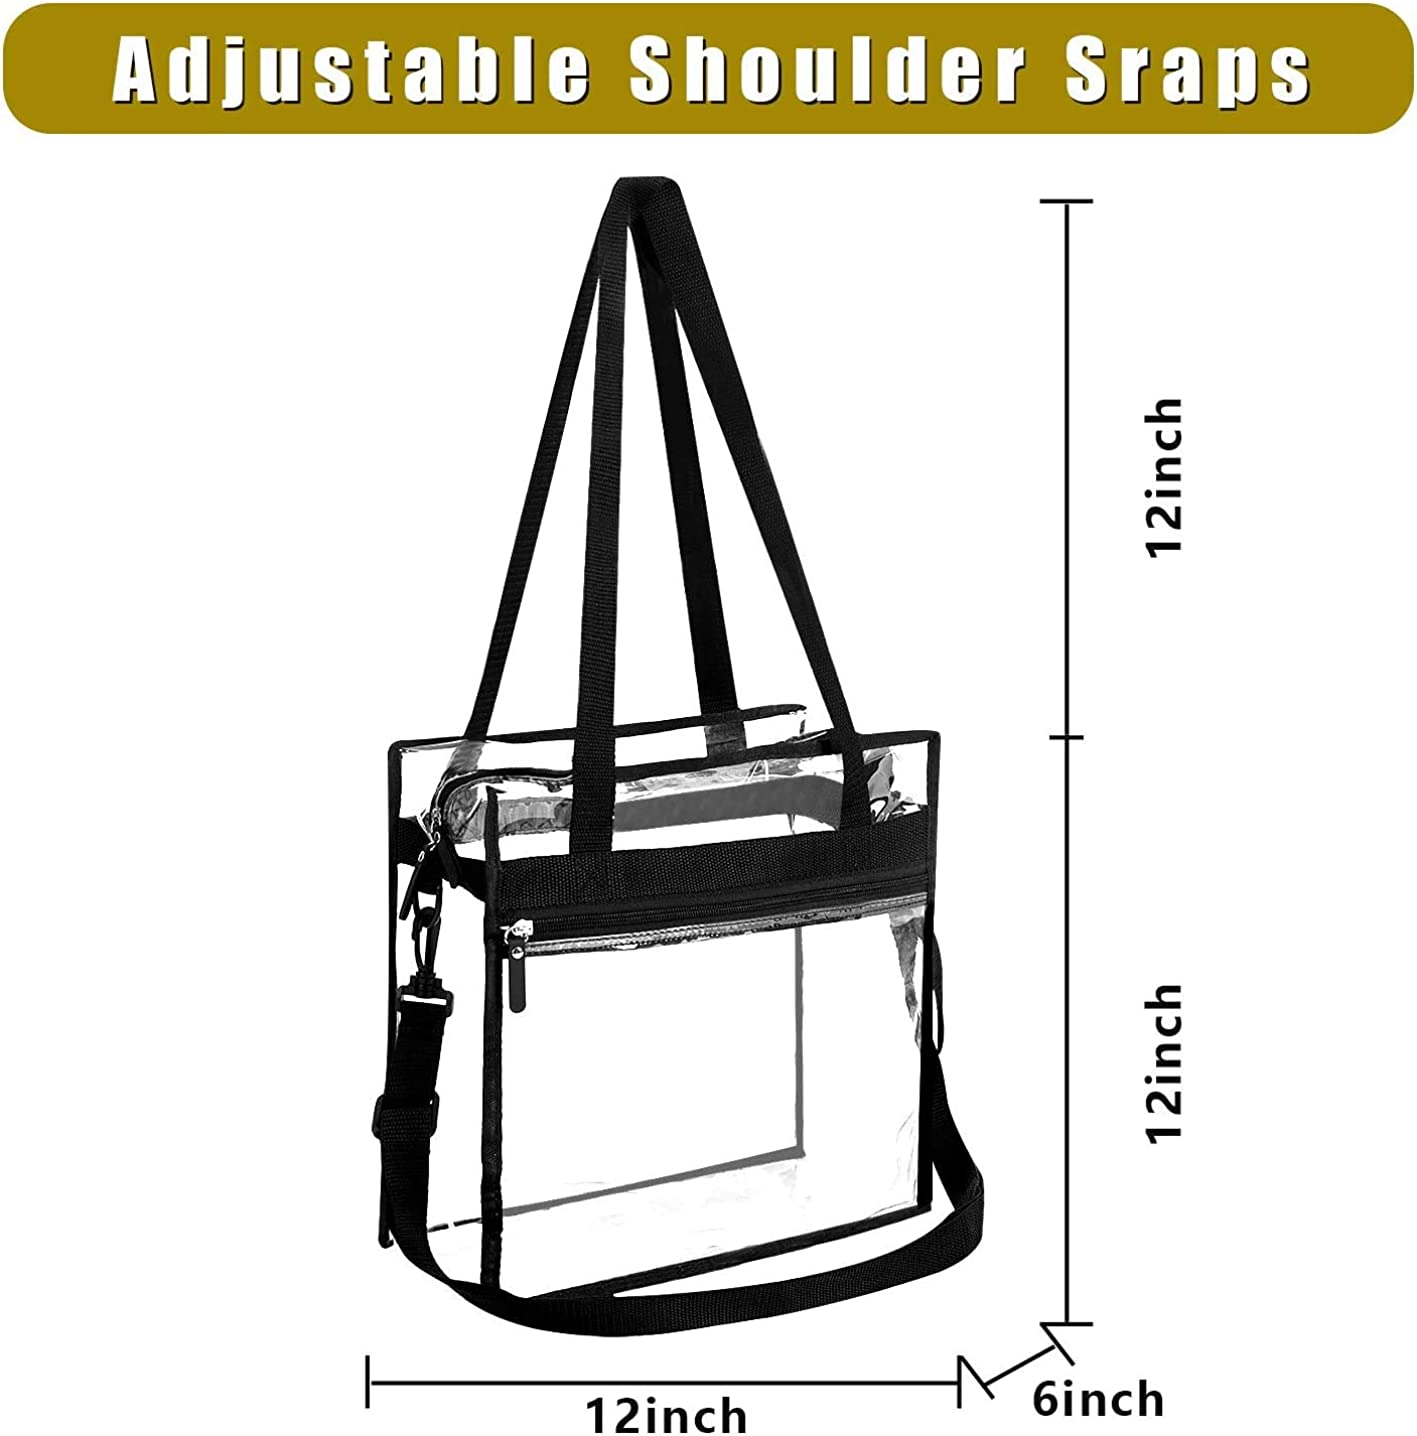 Bagail Clear Bag NFL /& PGA Stadium Approved Tote Bags with Front Pocket and Adjustable Shoulder Strap